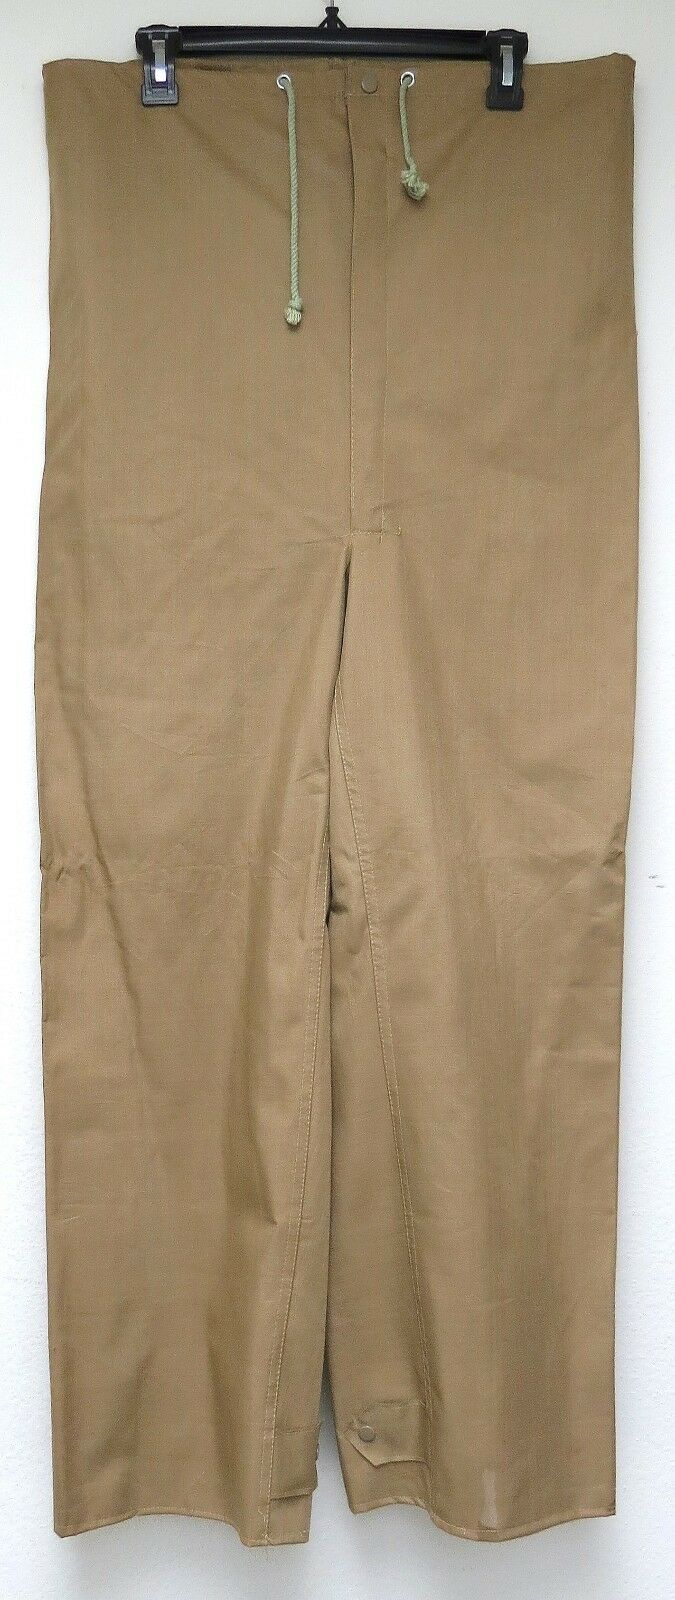 Vtg World Famous TAN RUBBERIZED WADERS MED Fishing  Pants 70s 80s japan made M  check out the cheapest